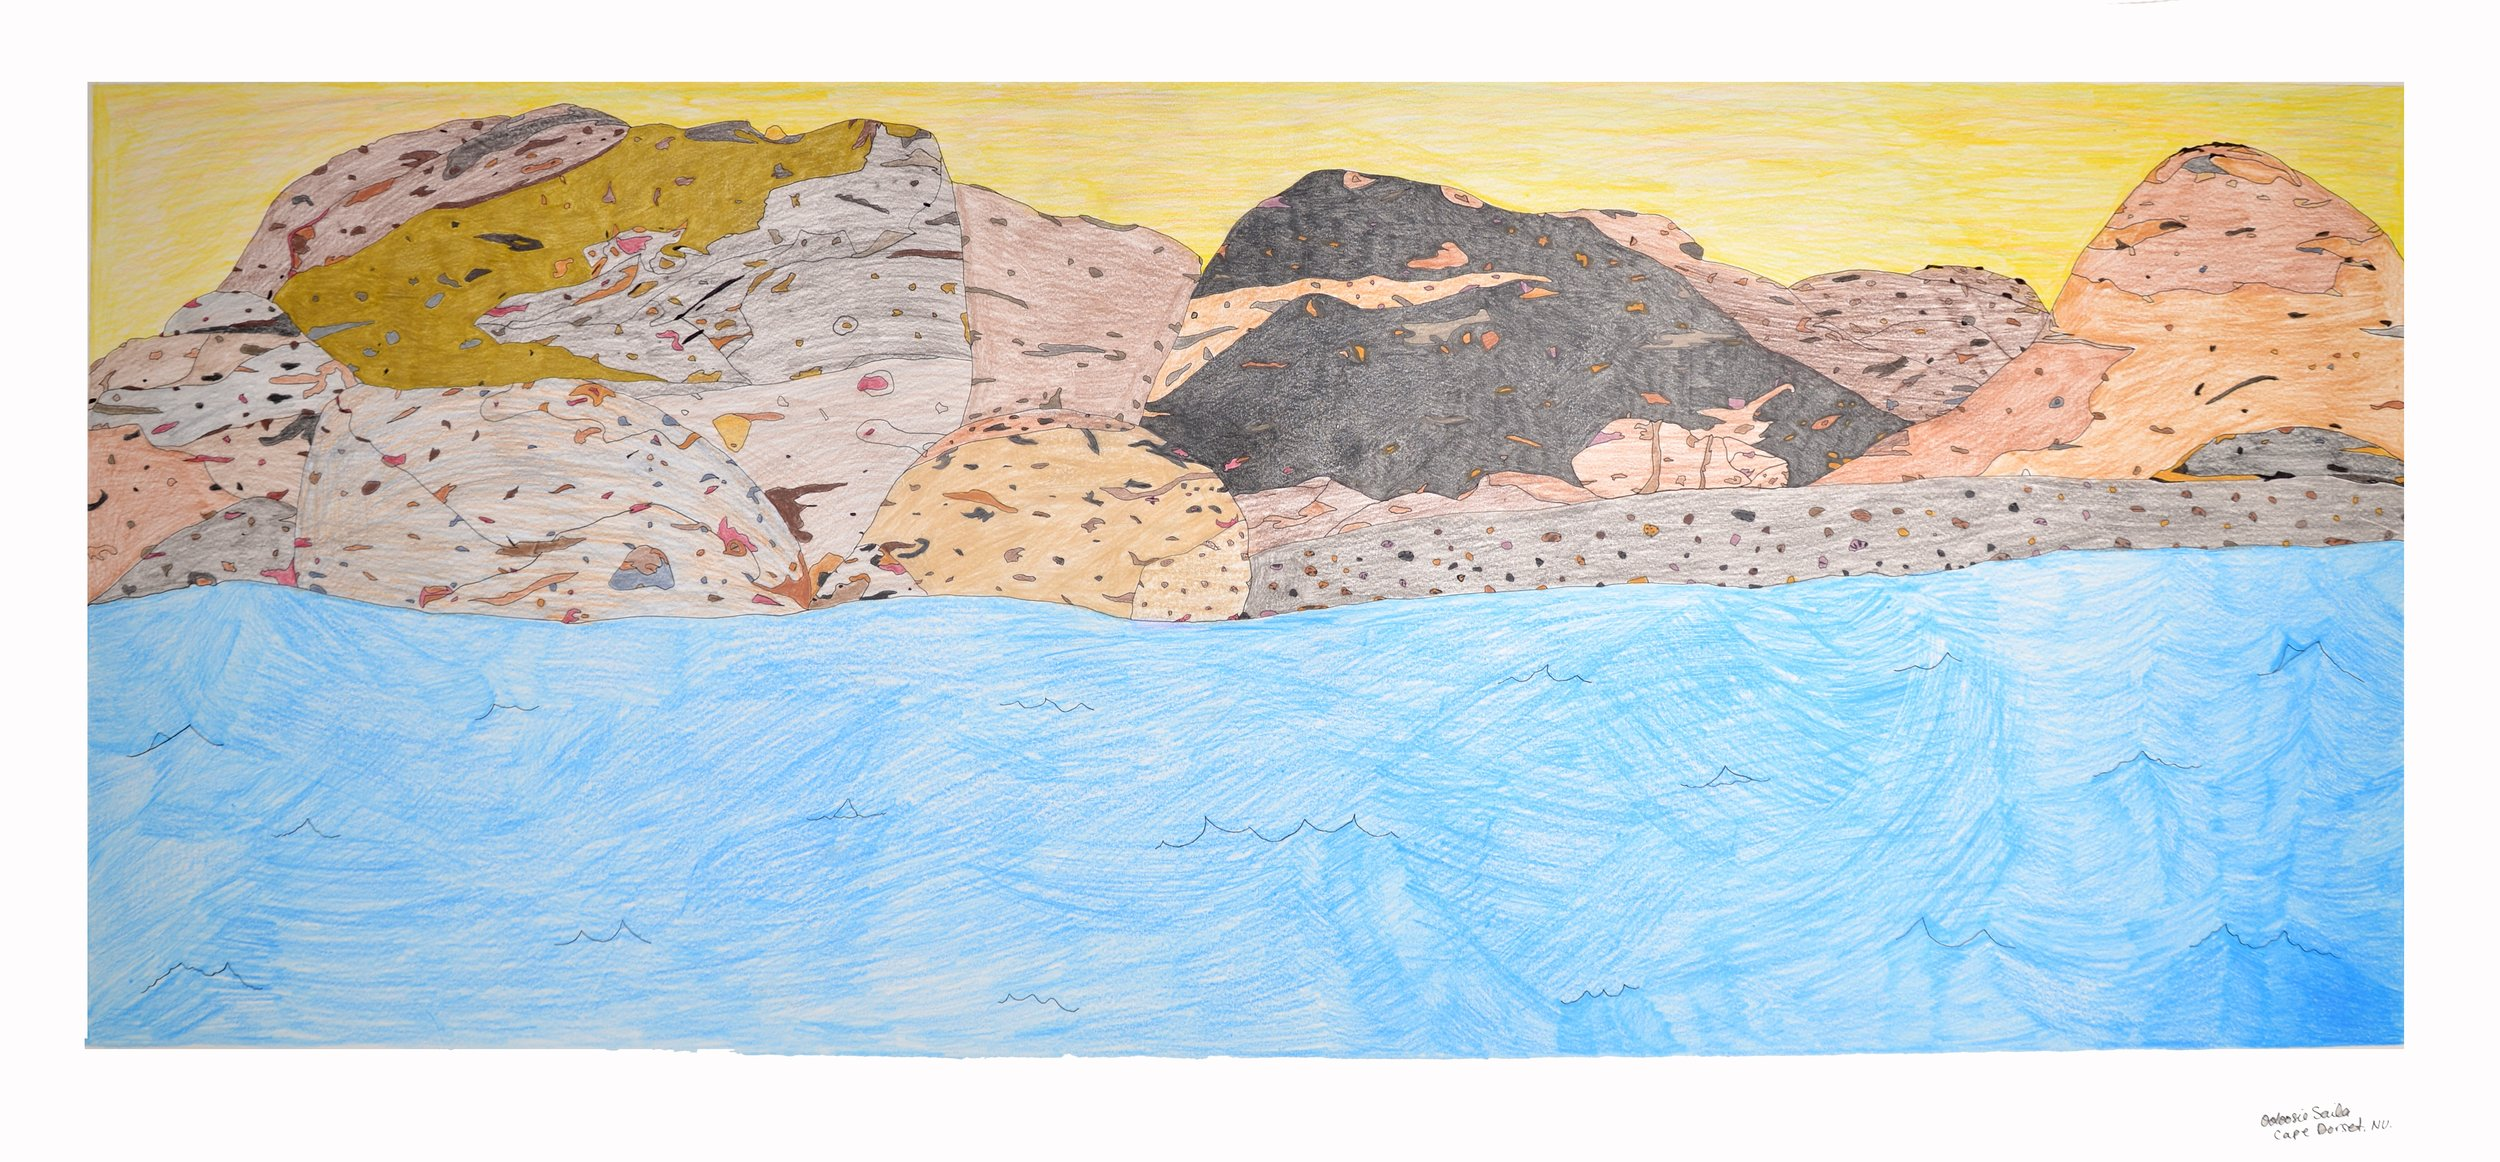 Ooloosie Saila Untitled, 2015 Coloured pencil and ink 56.5 x 126.3 cm 219-0015